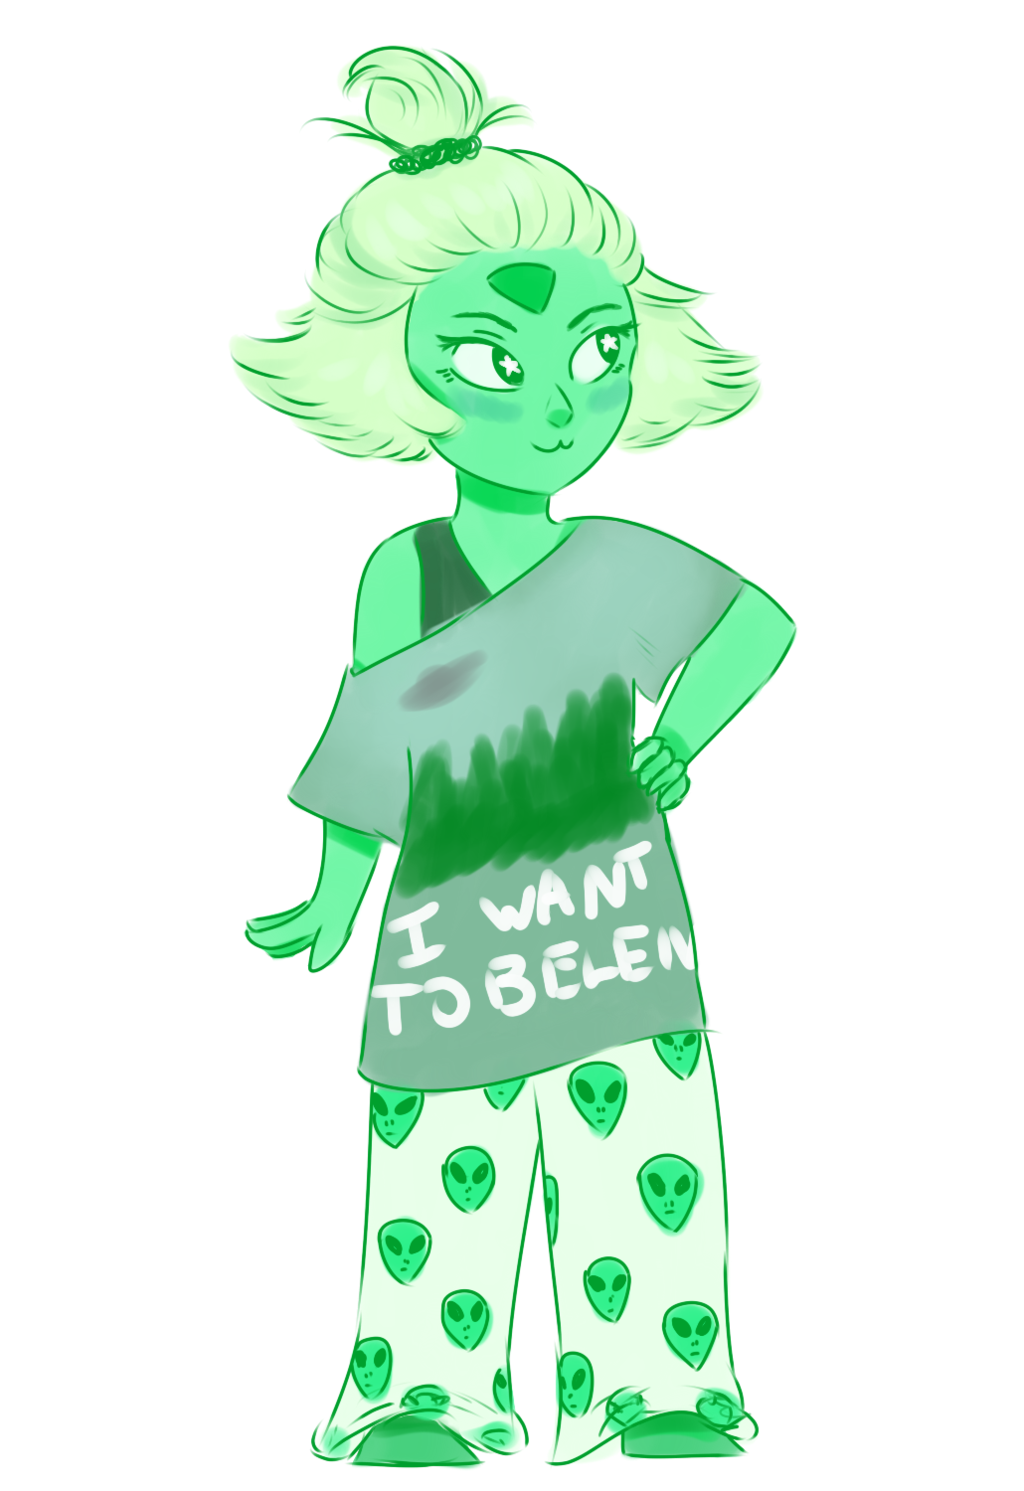 here is a casual peridot in an attempt to make myself feel better. she's transparent